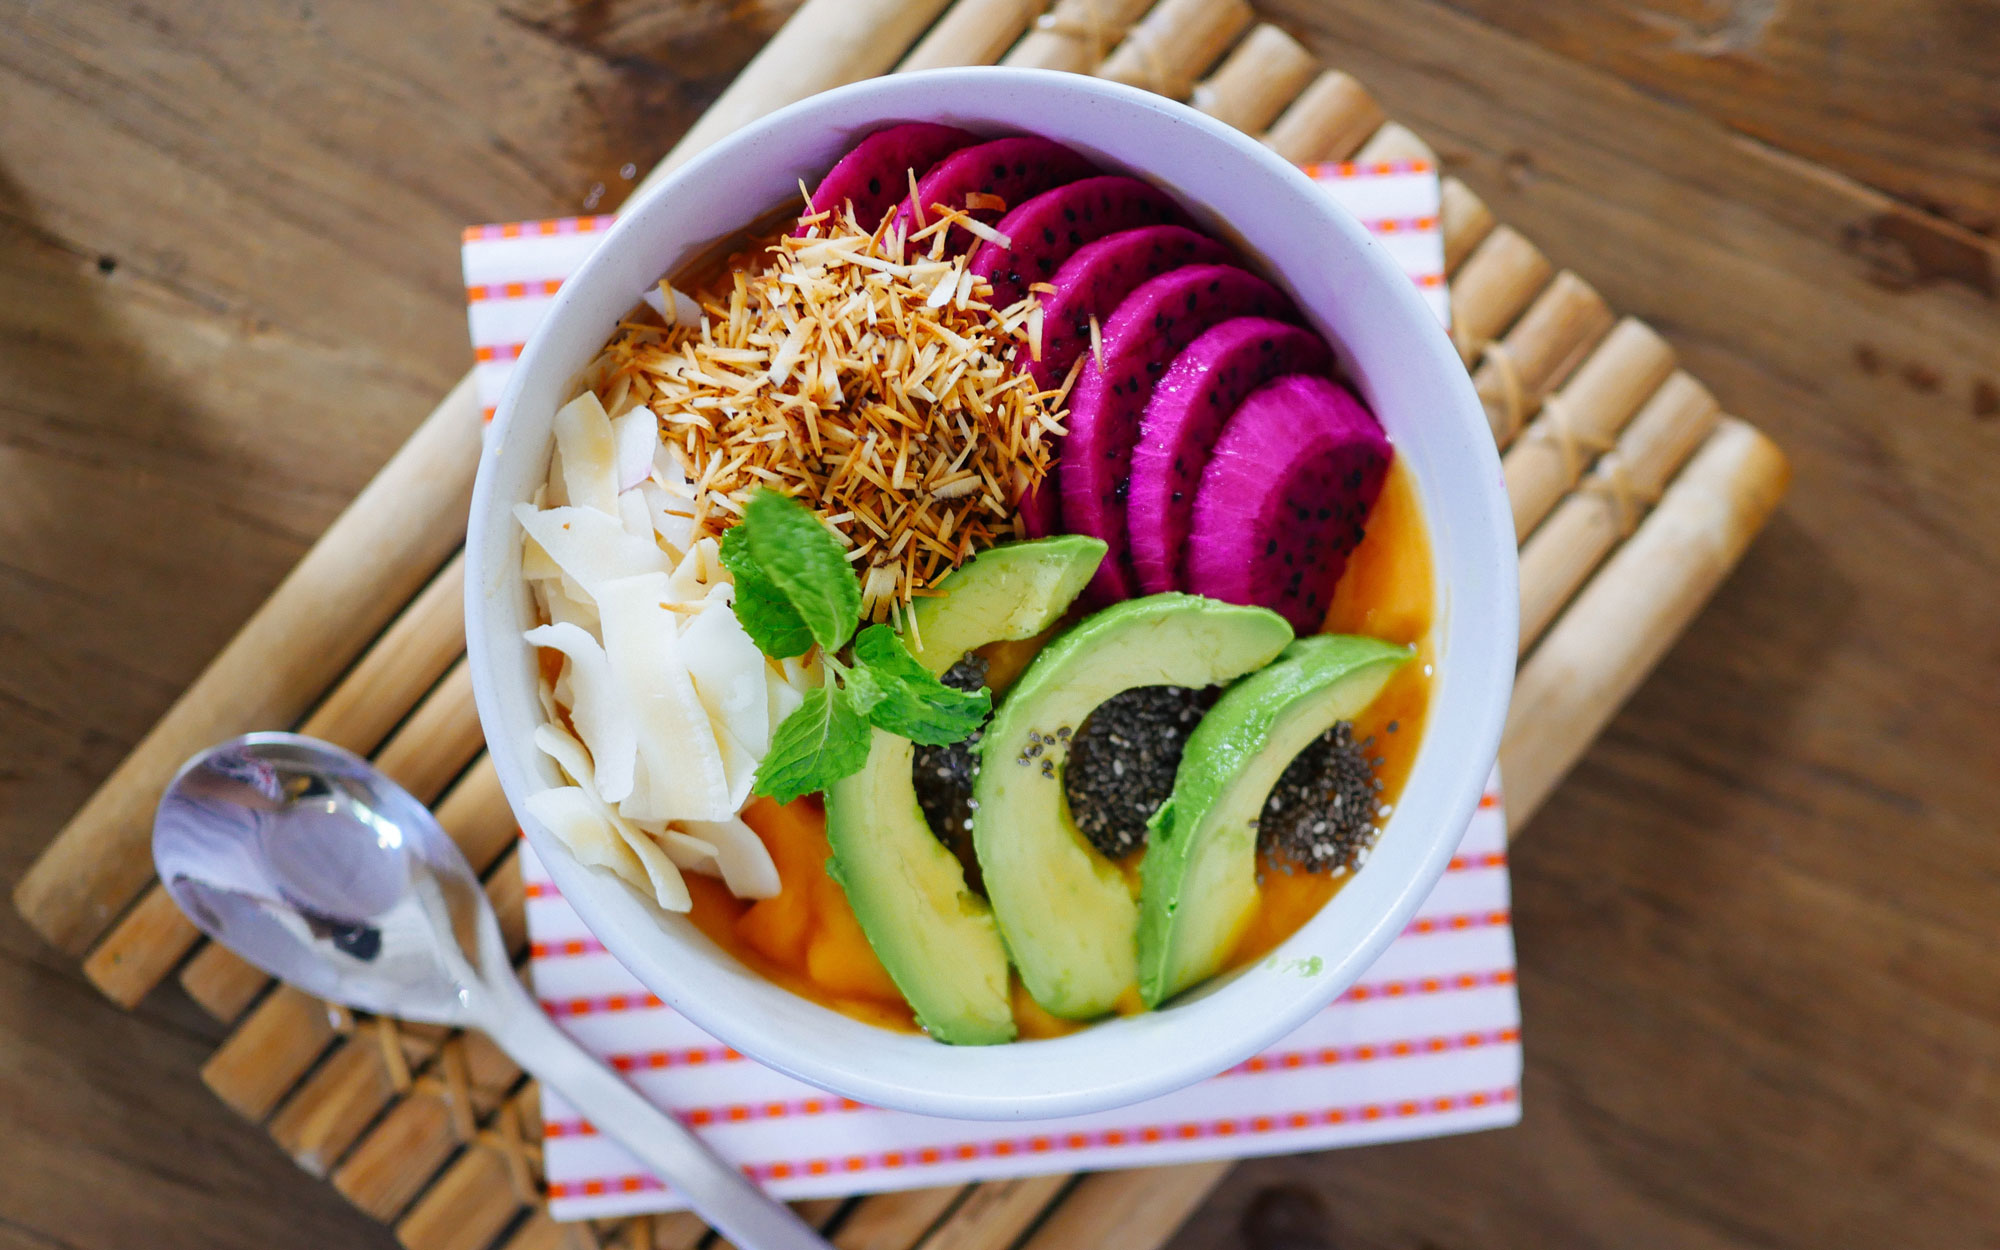 Healthy eating trend in conference food avocado beetroot bowl credit mariana montes de oca